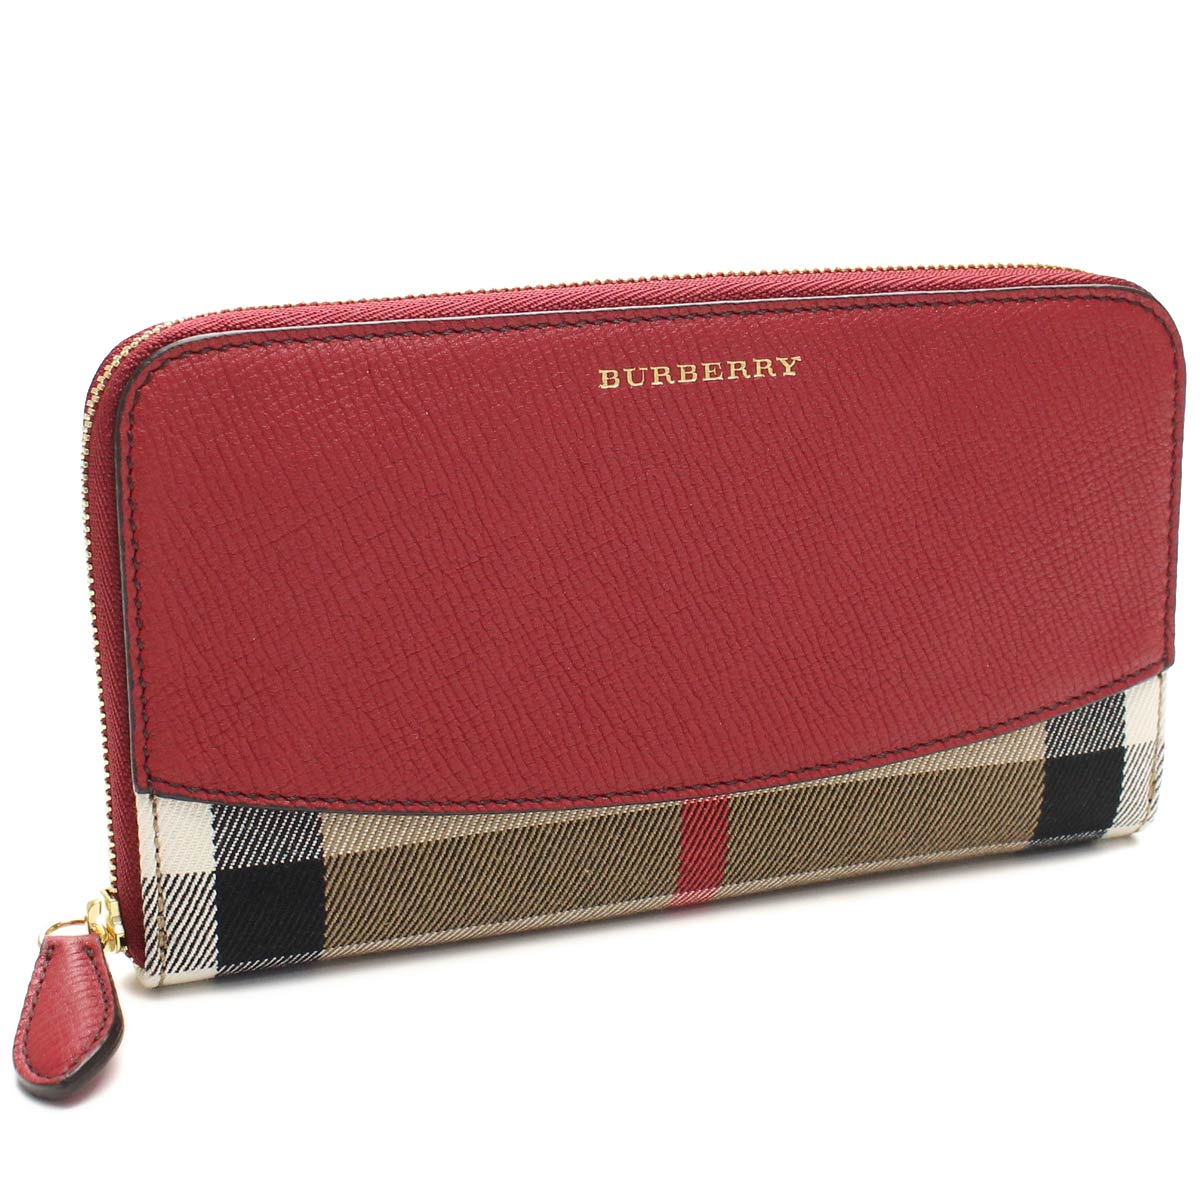 Hit The Total Brand Whole Burberry Wallet Large Zip Around 3975333 Russet Red Series Multi Color Taxfree Send By